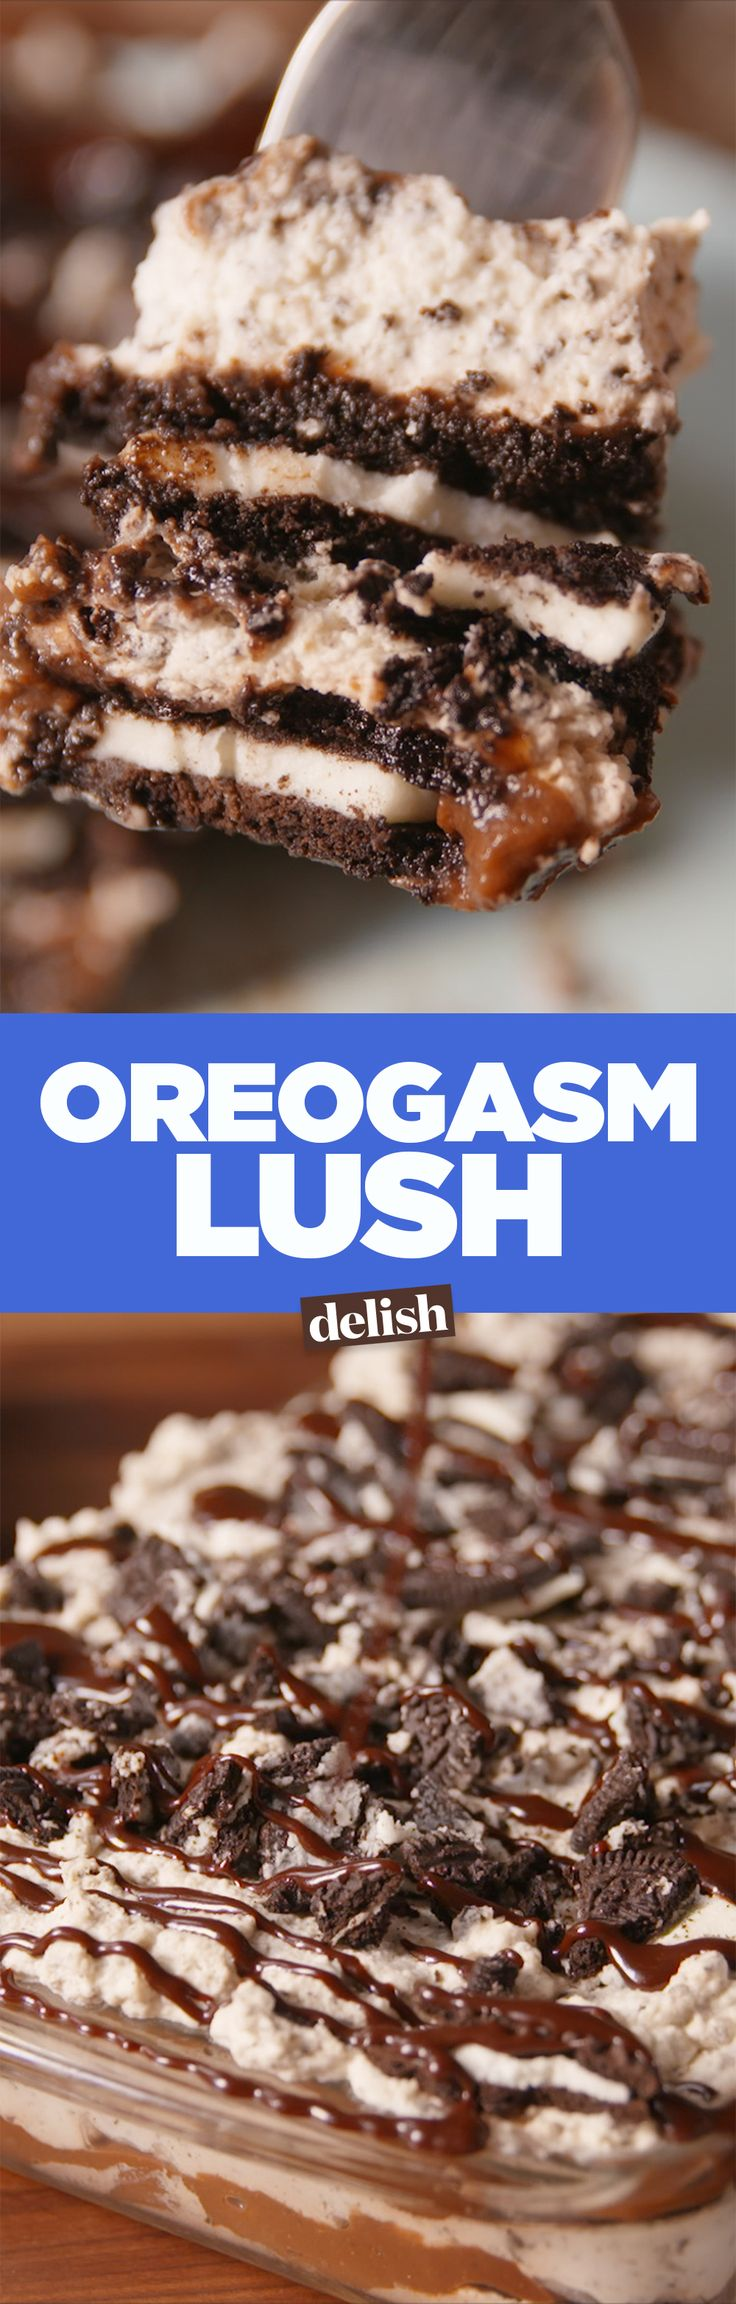 If you don't know what Oreogasm lush is, you're missing out. Get the recipe on Delish.com.